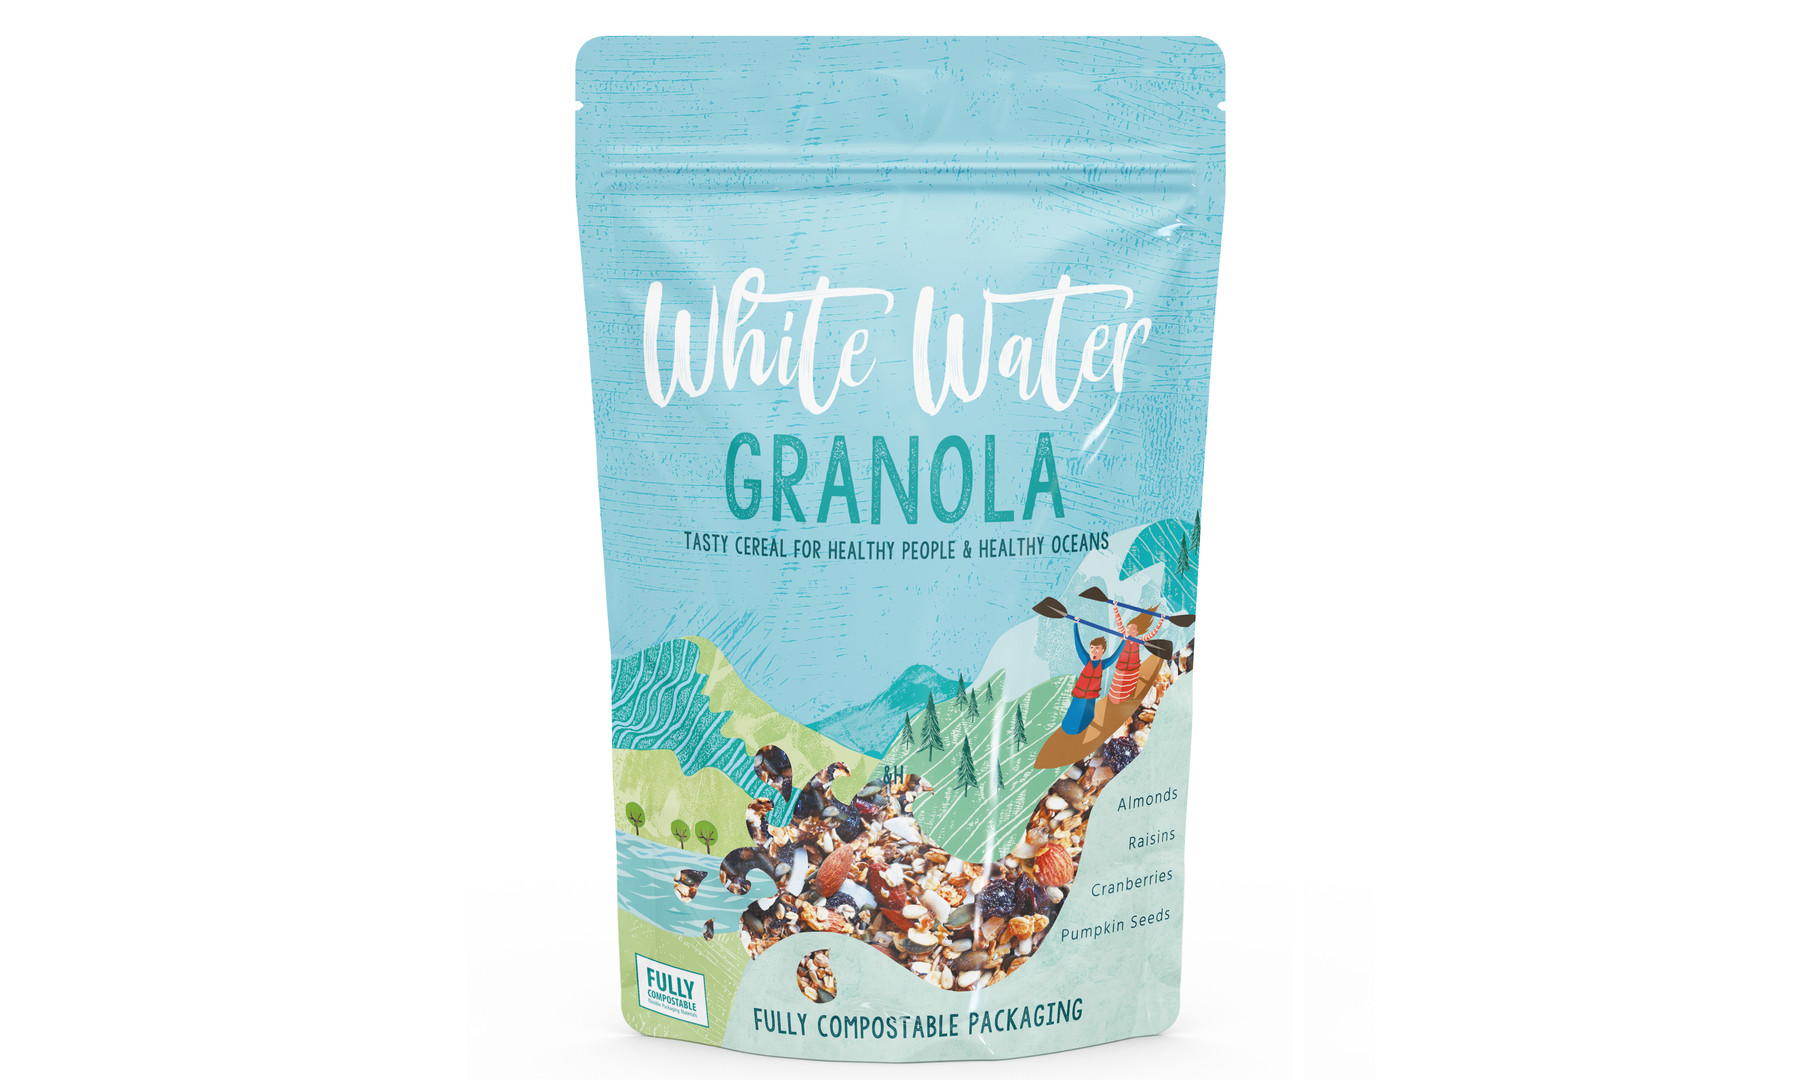 Eco friendly packaging design by Jenny Daymond illustration, waterfall, mountains, children's packaging design